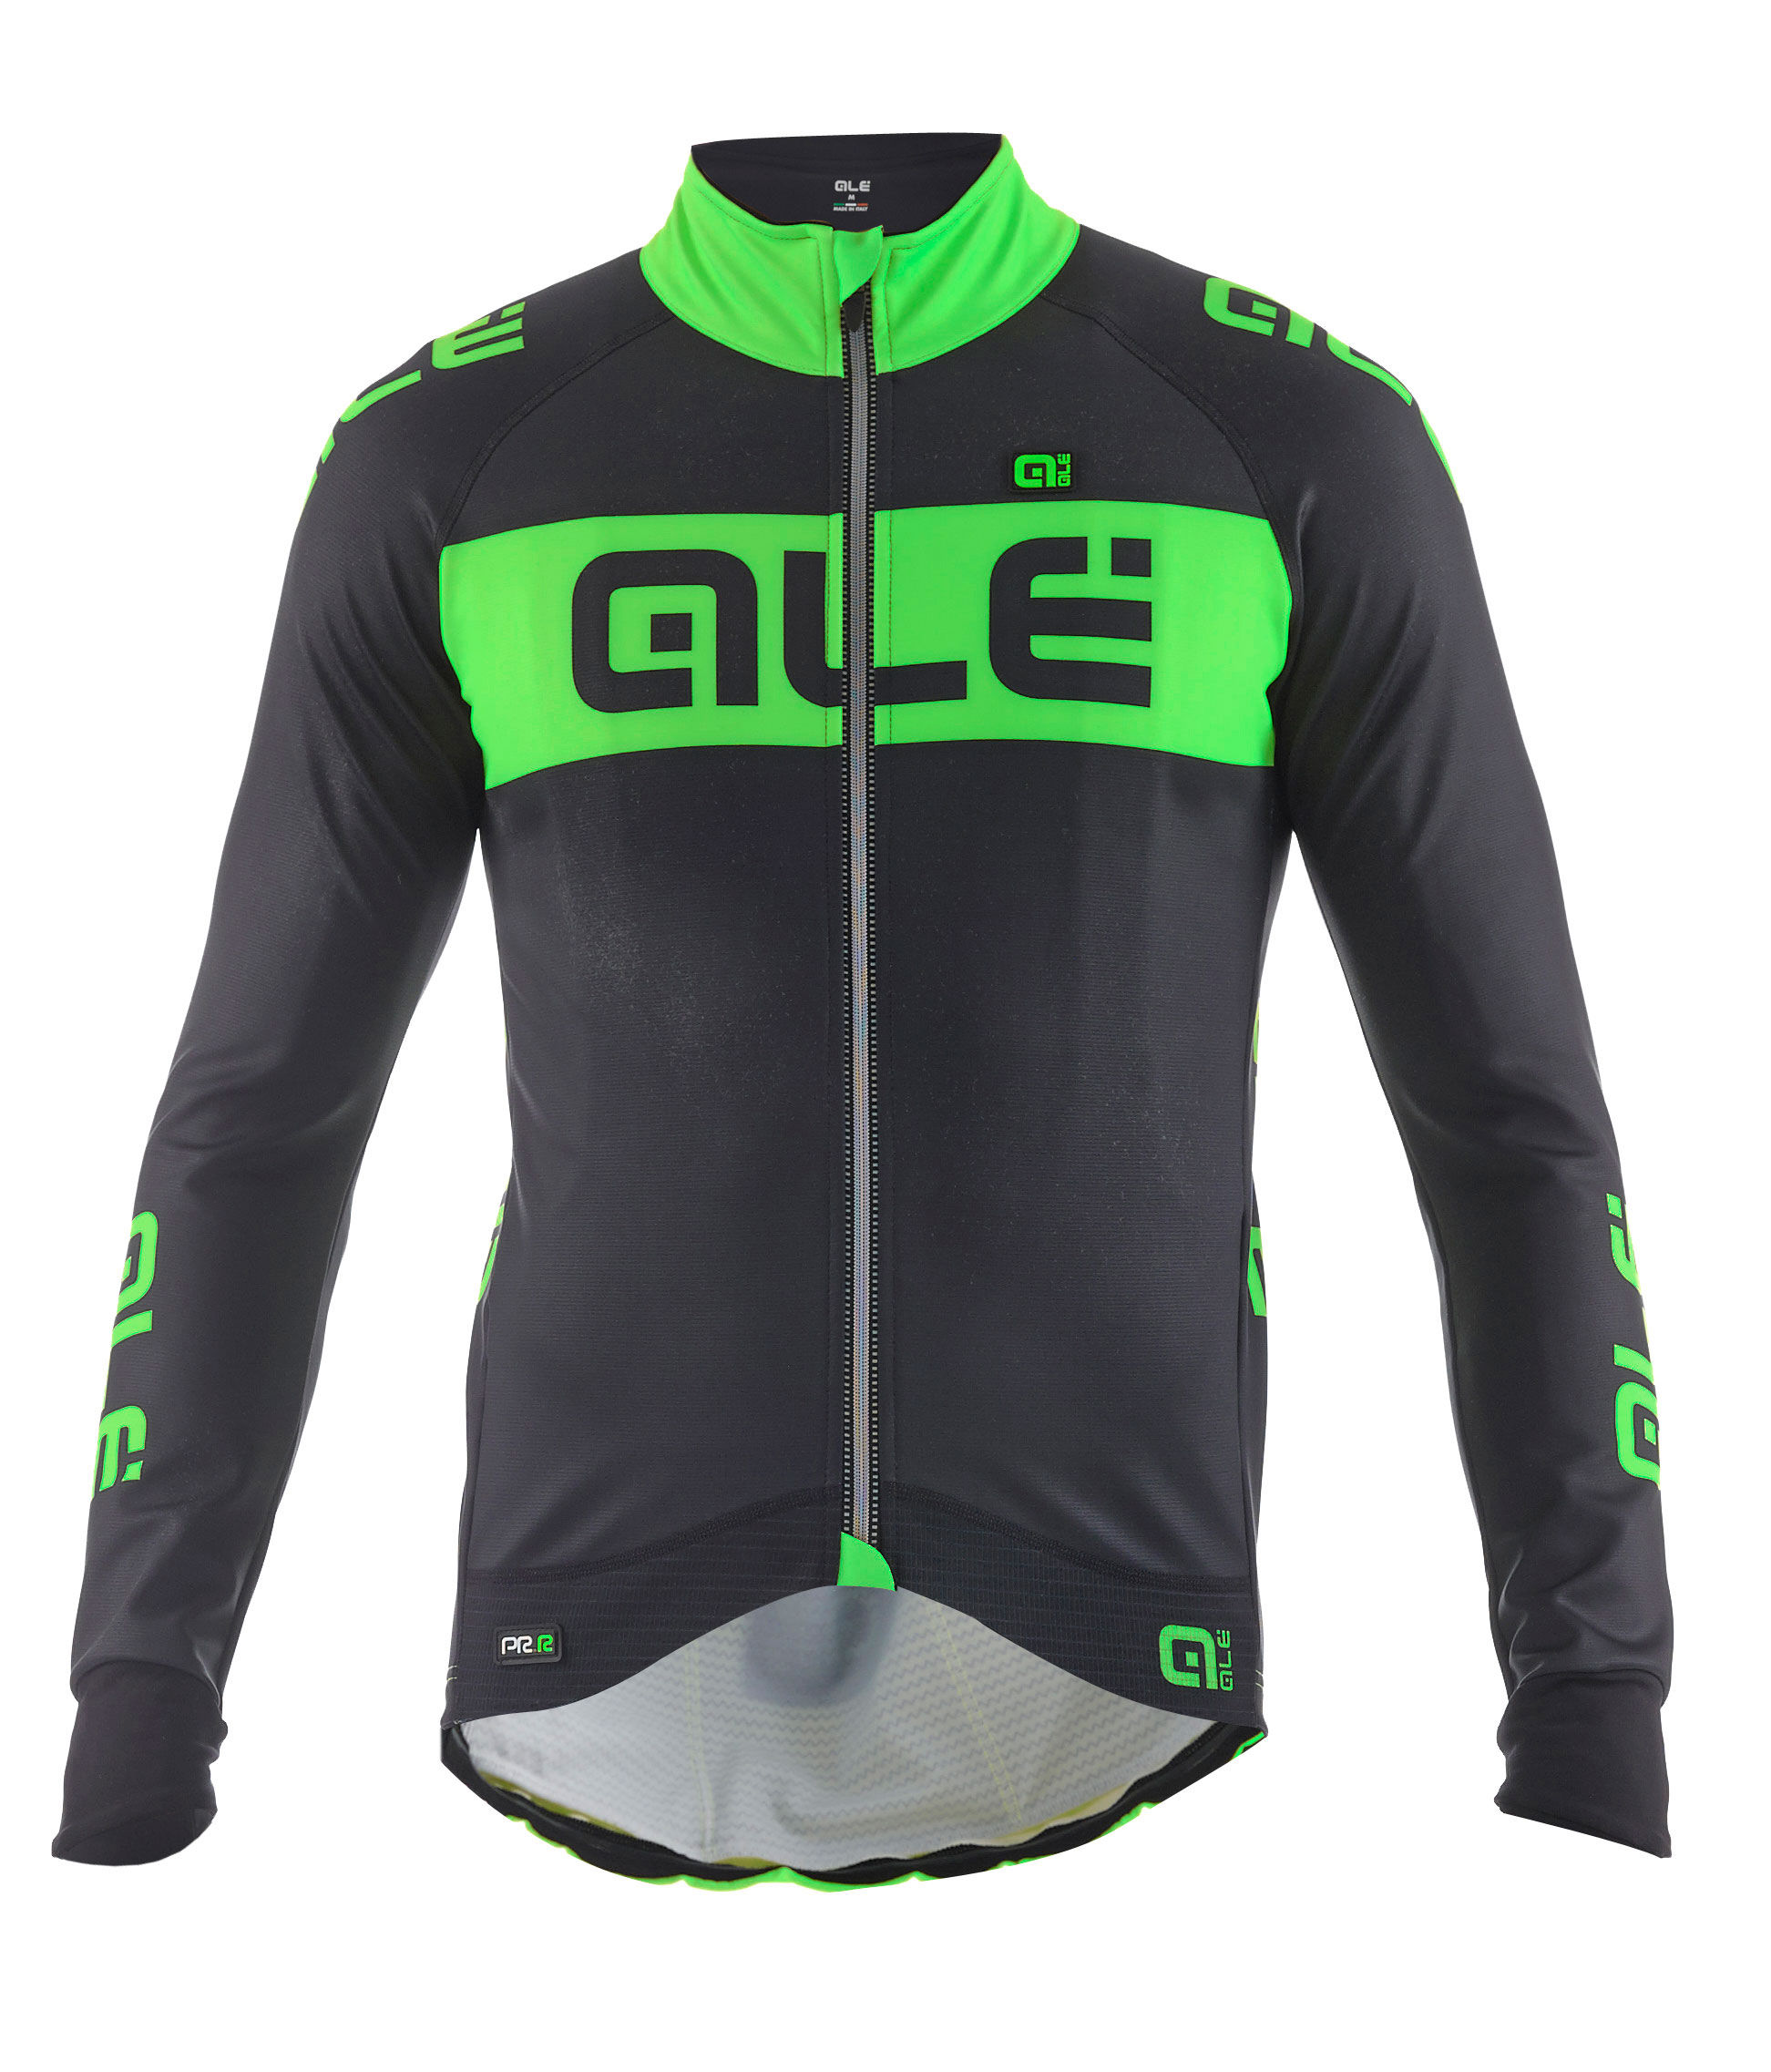 Al? PRR Ponent? Jacket   Cycling Waterproof Jackets